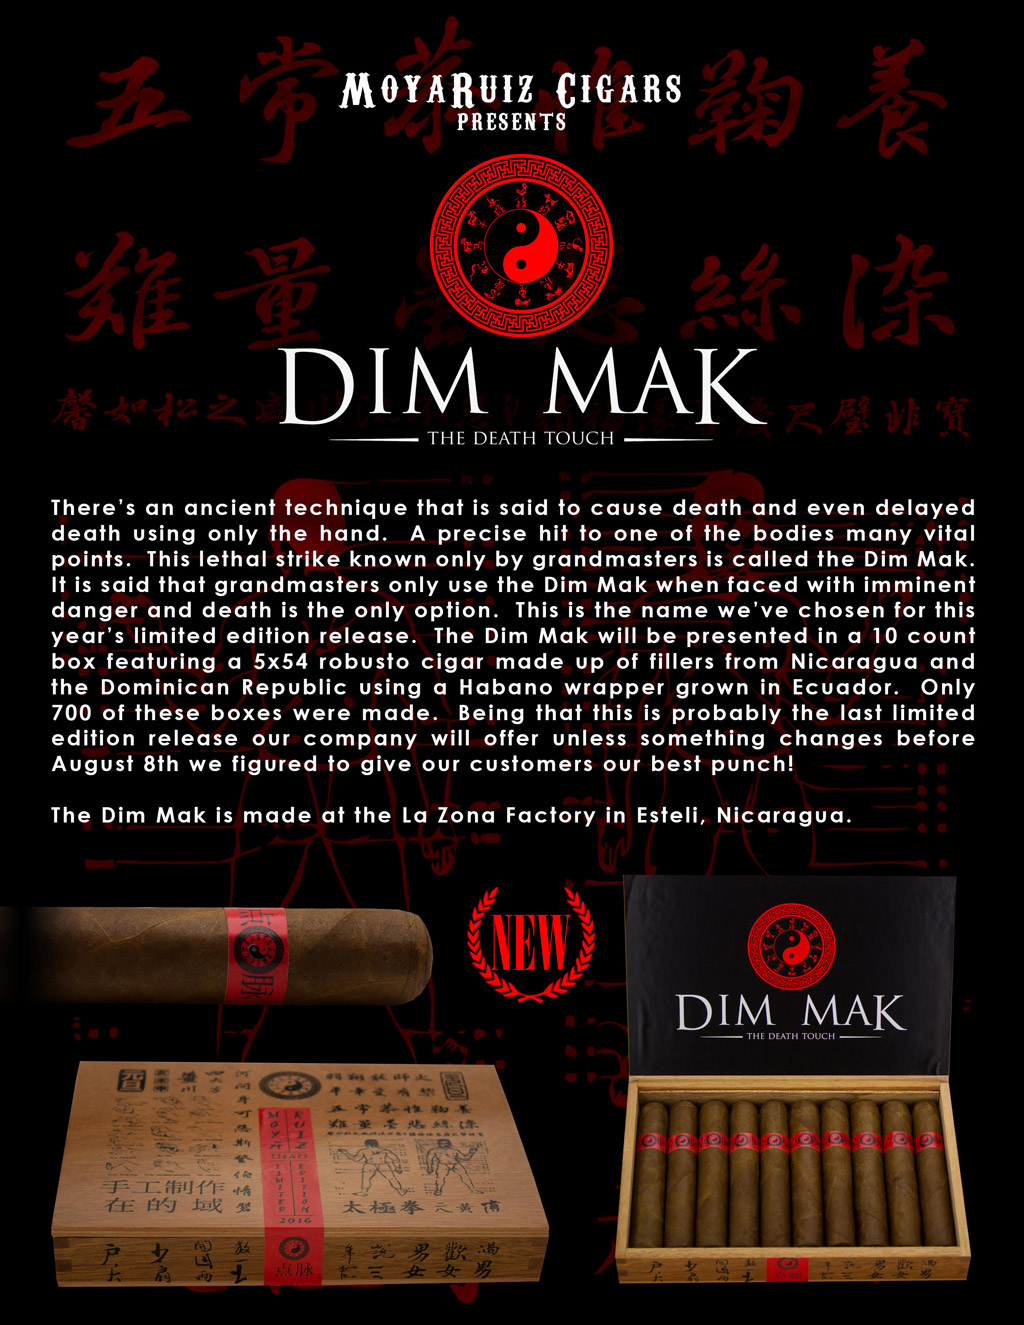 MoyaRuiz Dim Mak cigar press release